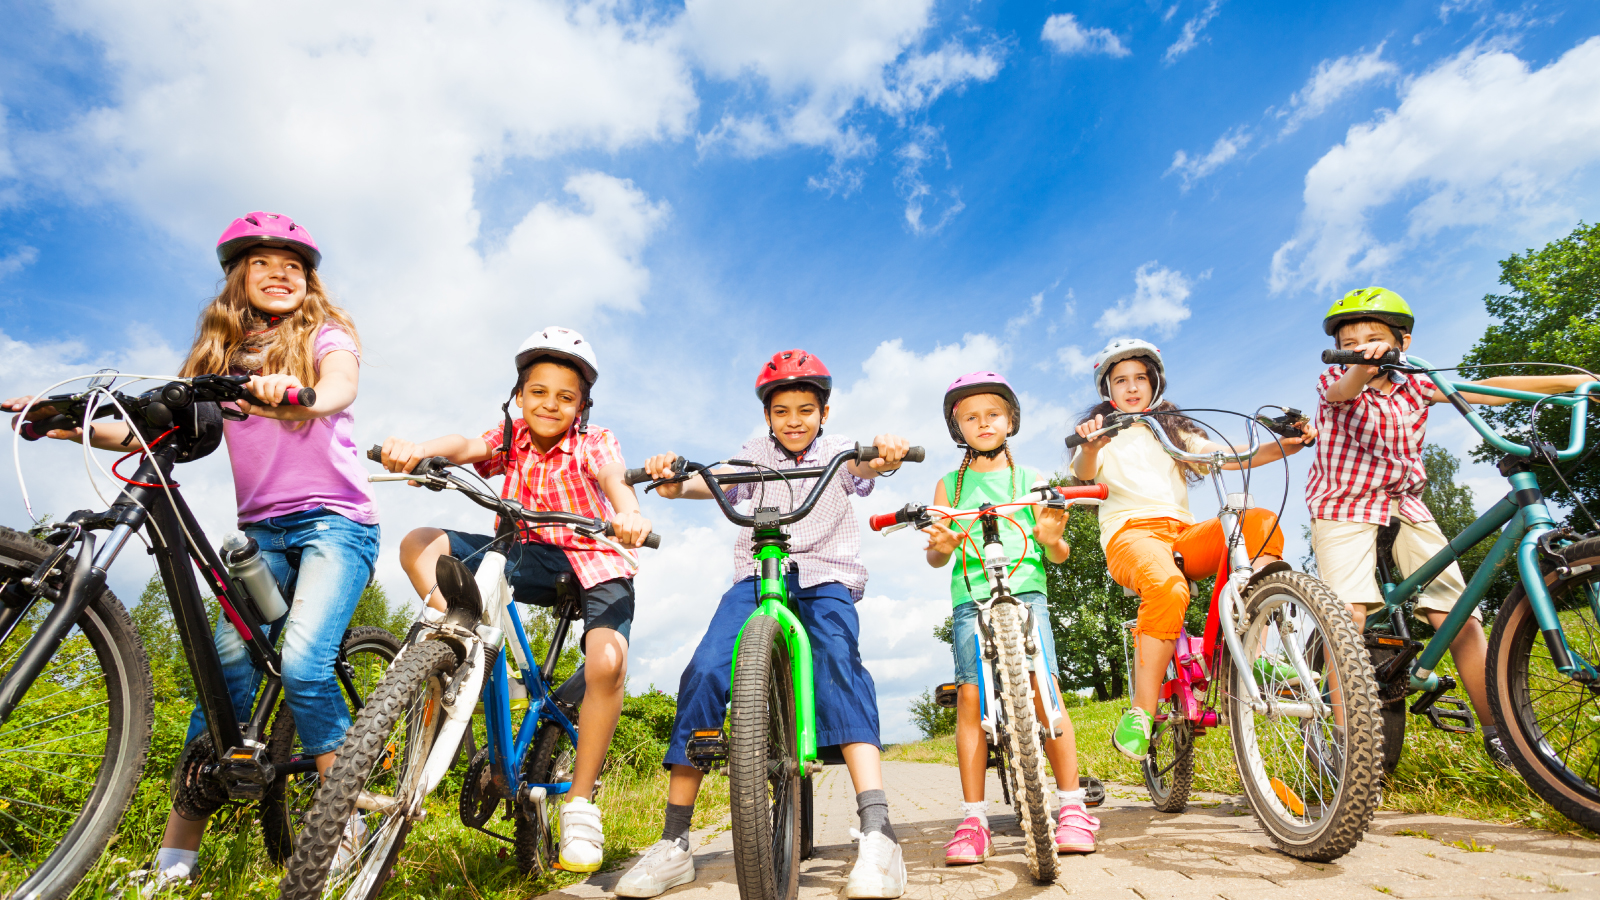 4 kids sitting on their bikes in the sun with the clouds rolling by overhead.